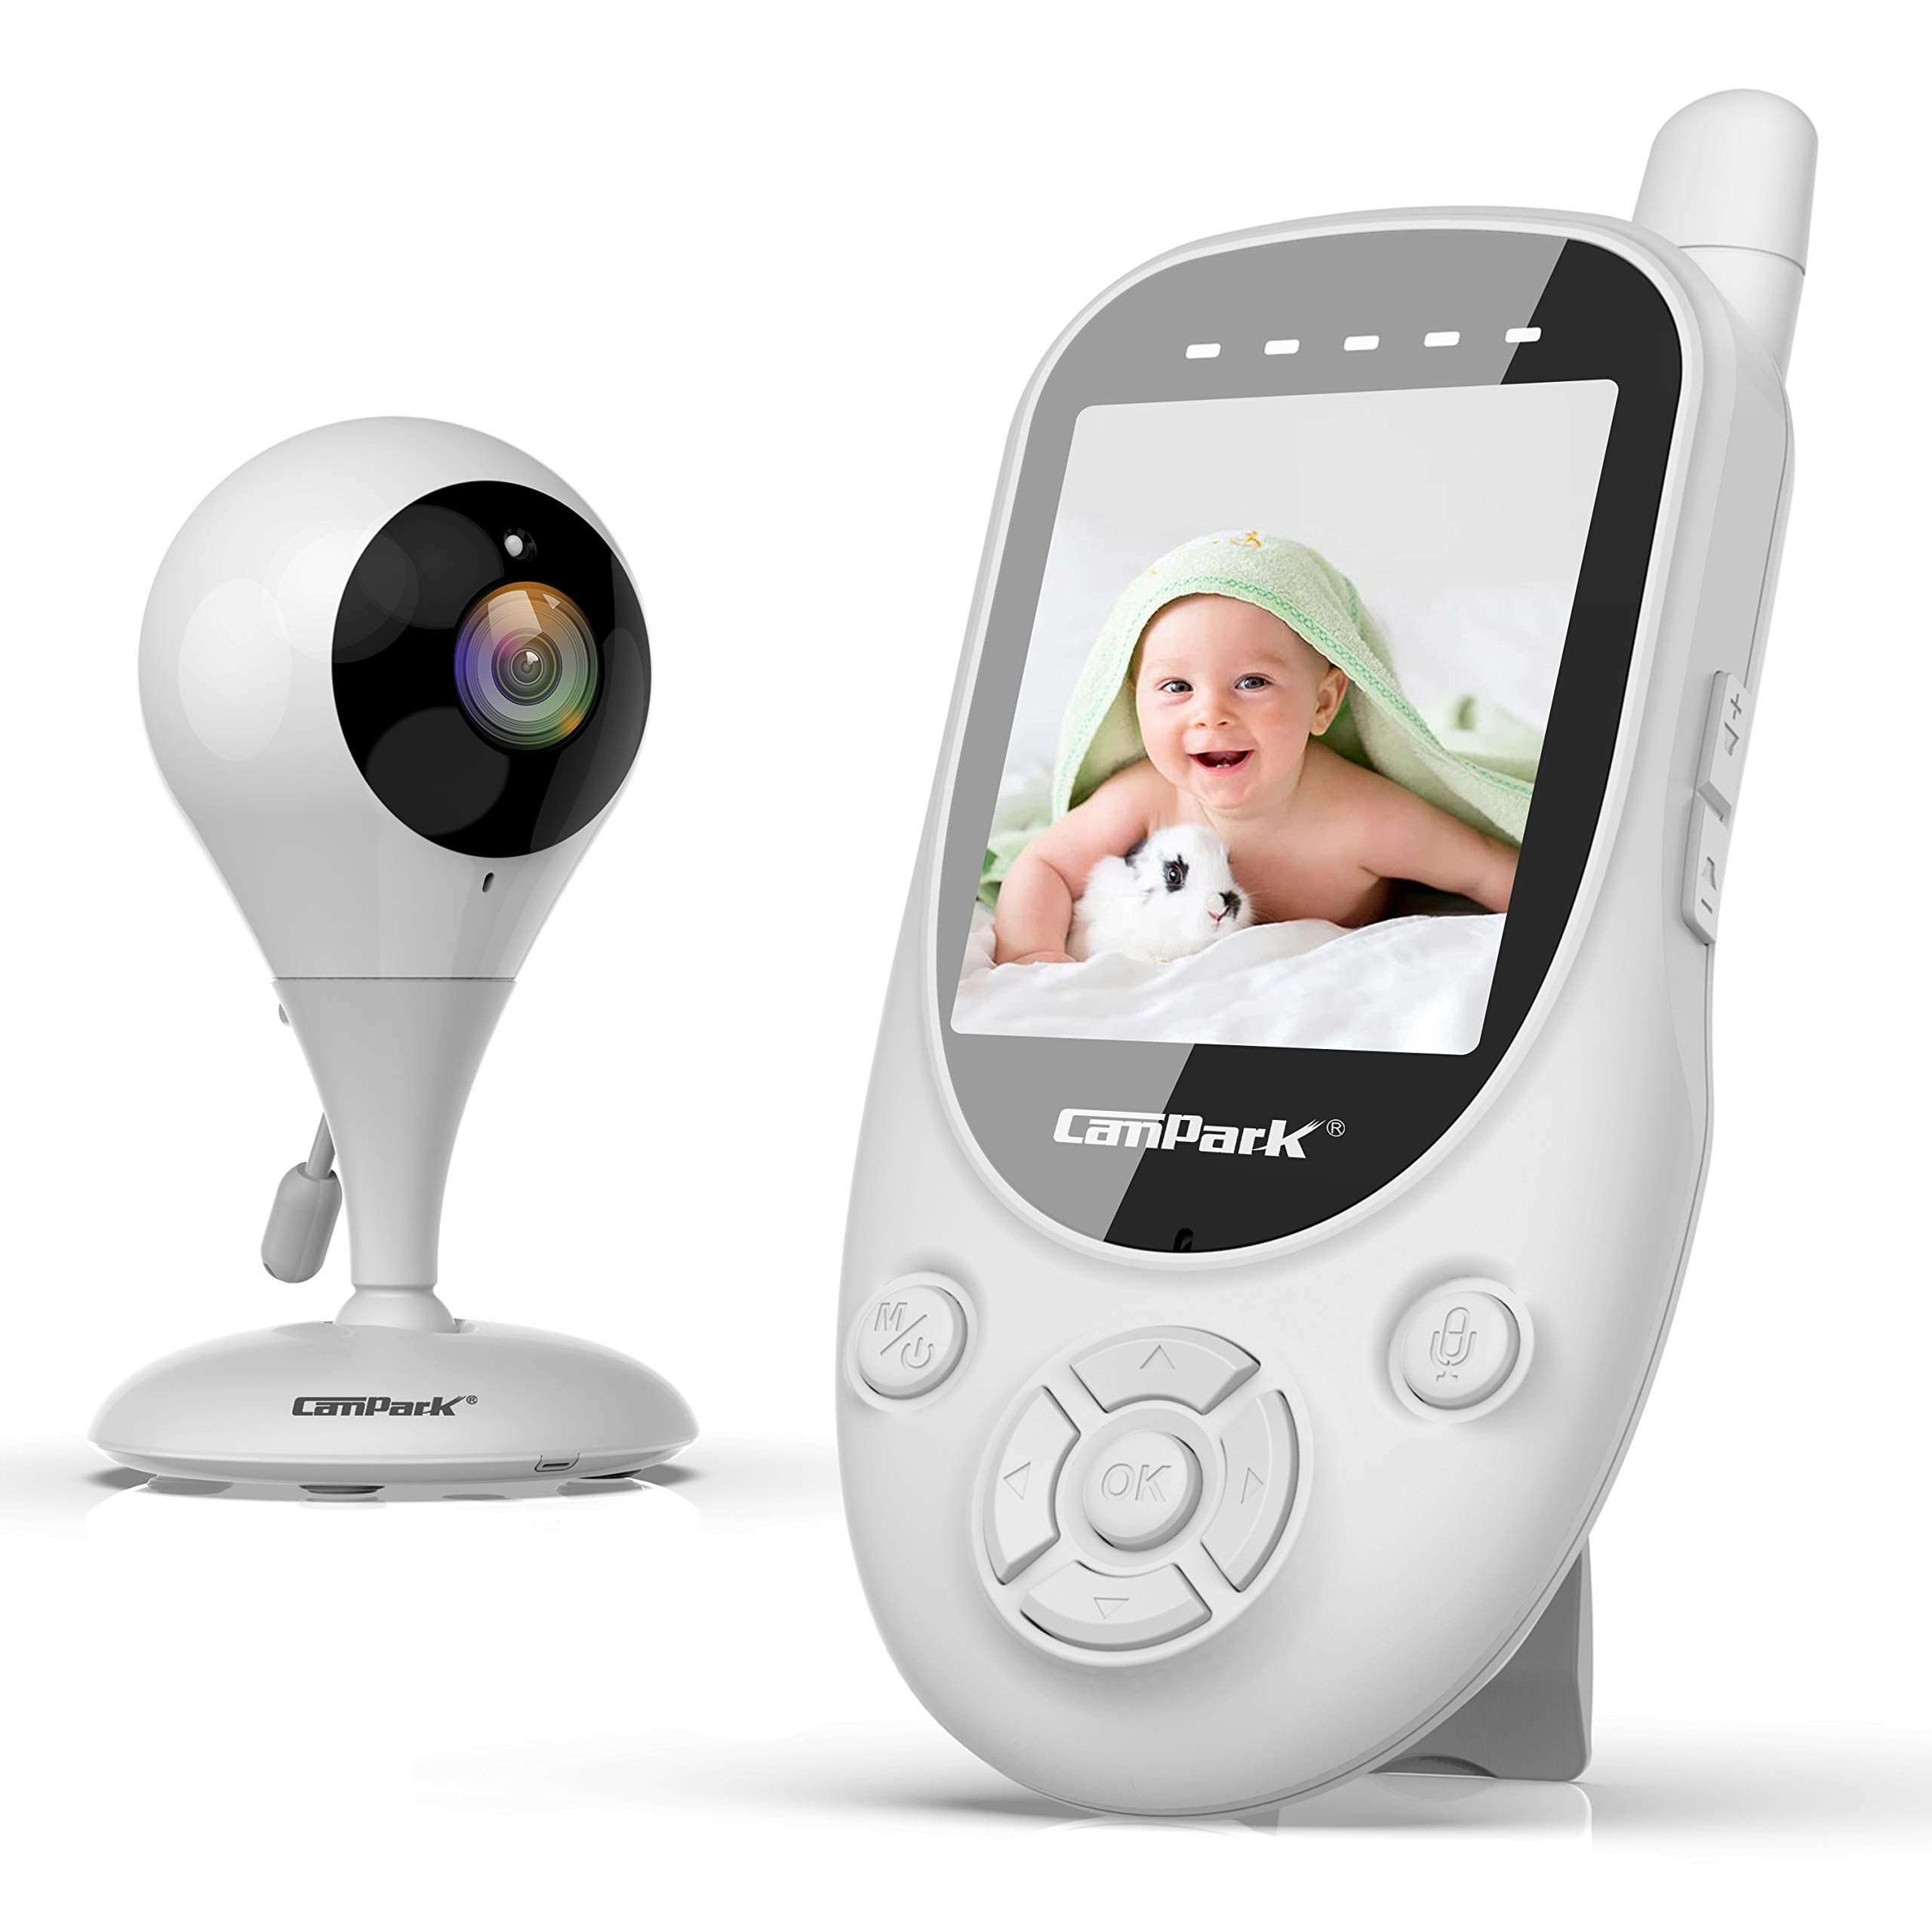 Campark Baby Monitor 2 4ghz Wireless Video Digital Baby Camera With 1000ft Range Transmission Night Vision 2 Way Talk Vox Temperature S Baby Monitor Wireless Baby Monitor Baby Sounds